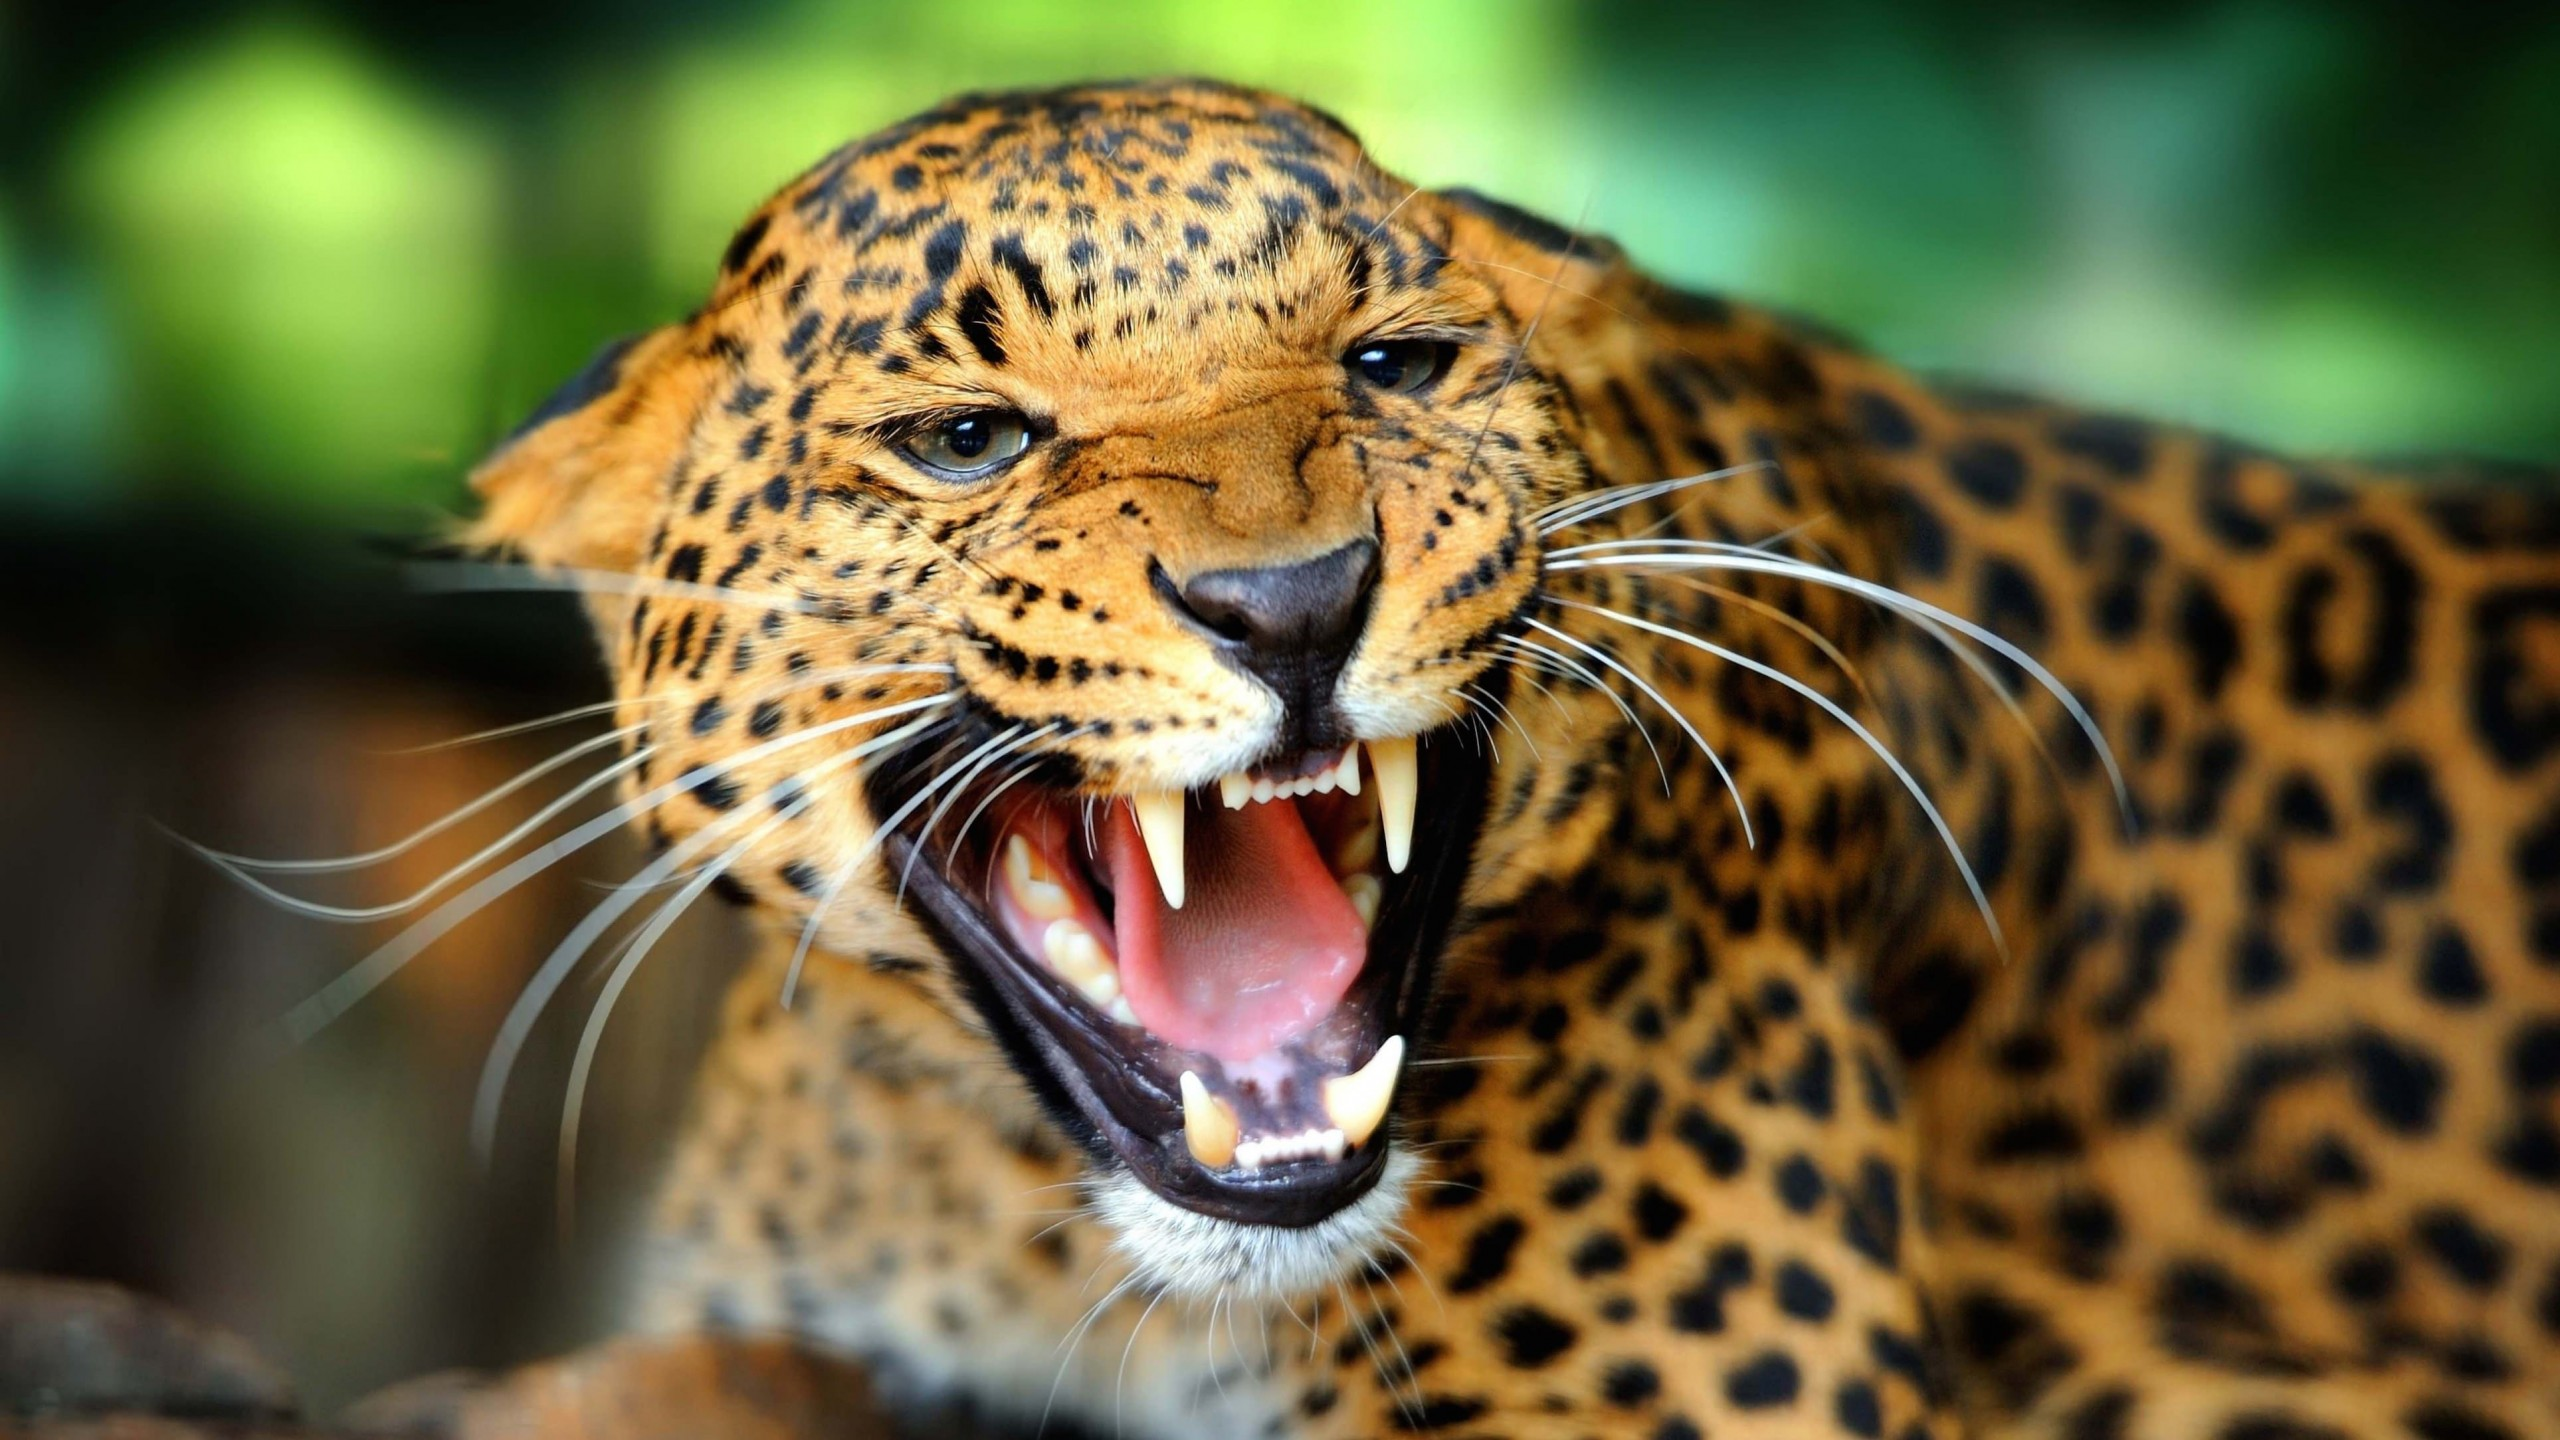 Growling Leopard Wallpaper for Desktop 2560x1440